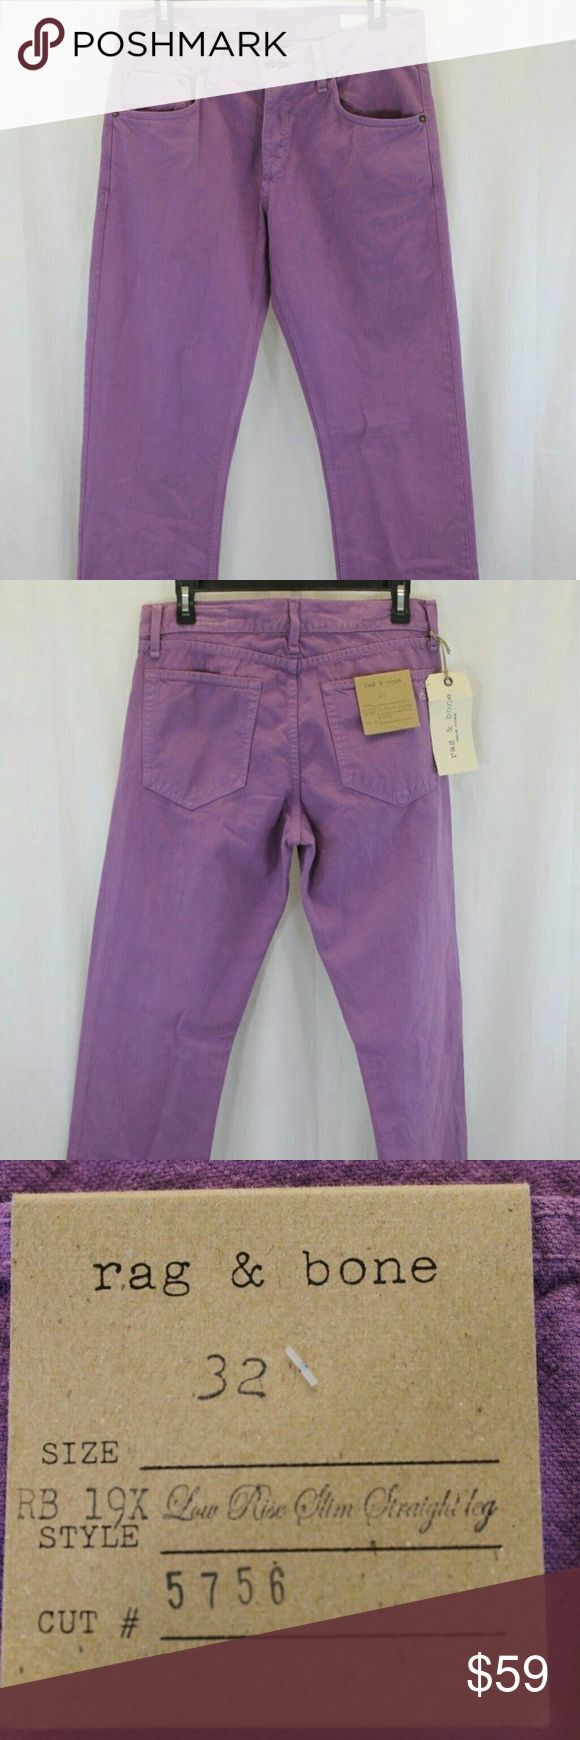 """WOMENS RAG & BONE VIOLET LOW RISE JEANS 32 NWT Measurements (we physically measured this item)  Waist:                                   32"""" Inseam:34"""" Length:45"""" Condition:LOW RISE - SLIM FIT STRAIGHT LEG 100% COTTON  NEW WITH TAGS. SOURCED DIRECTLY FROM A MAJOR US RETAILER. rag & bone Jeans Skinny"""